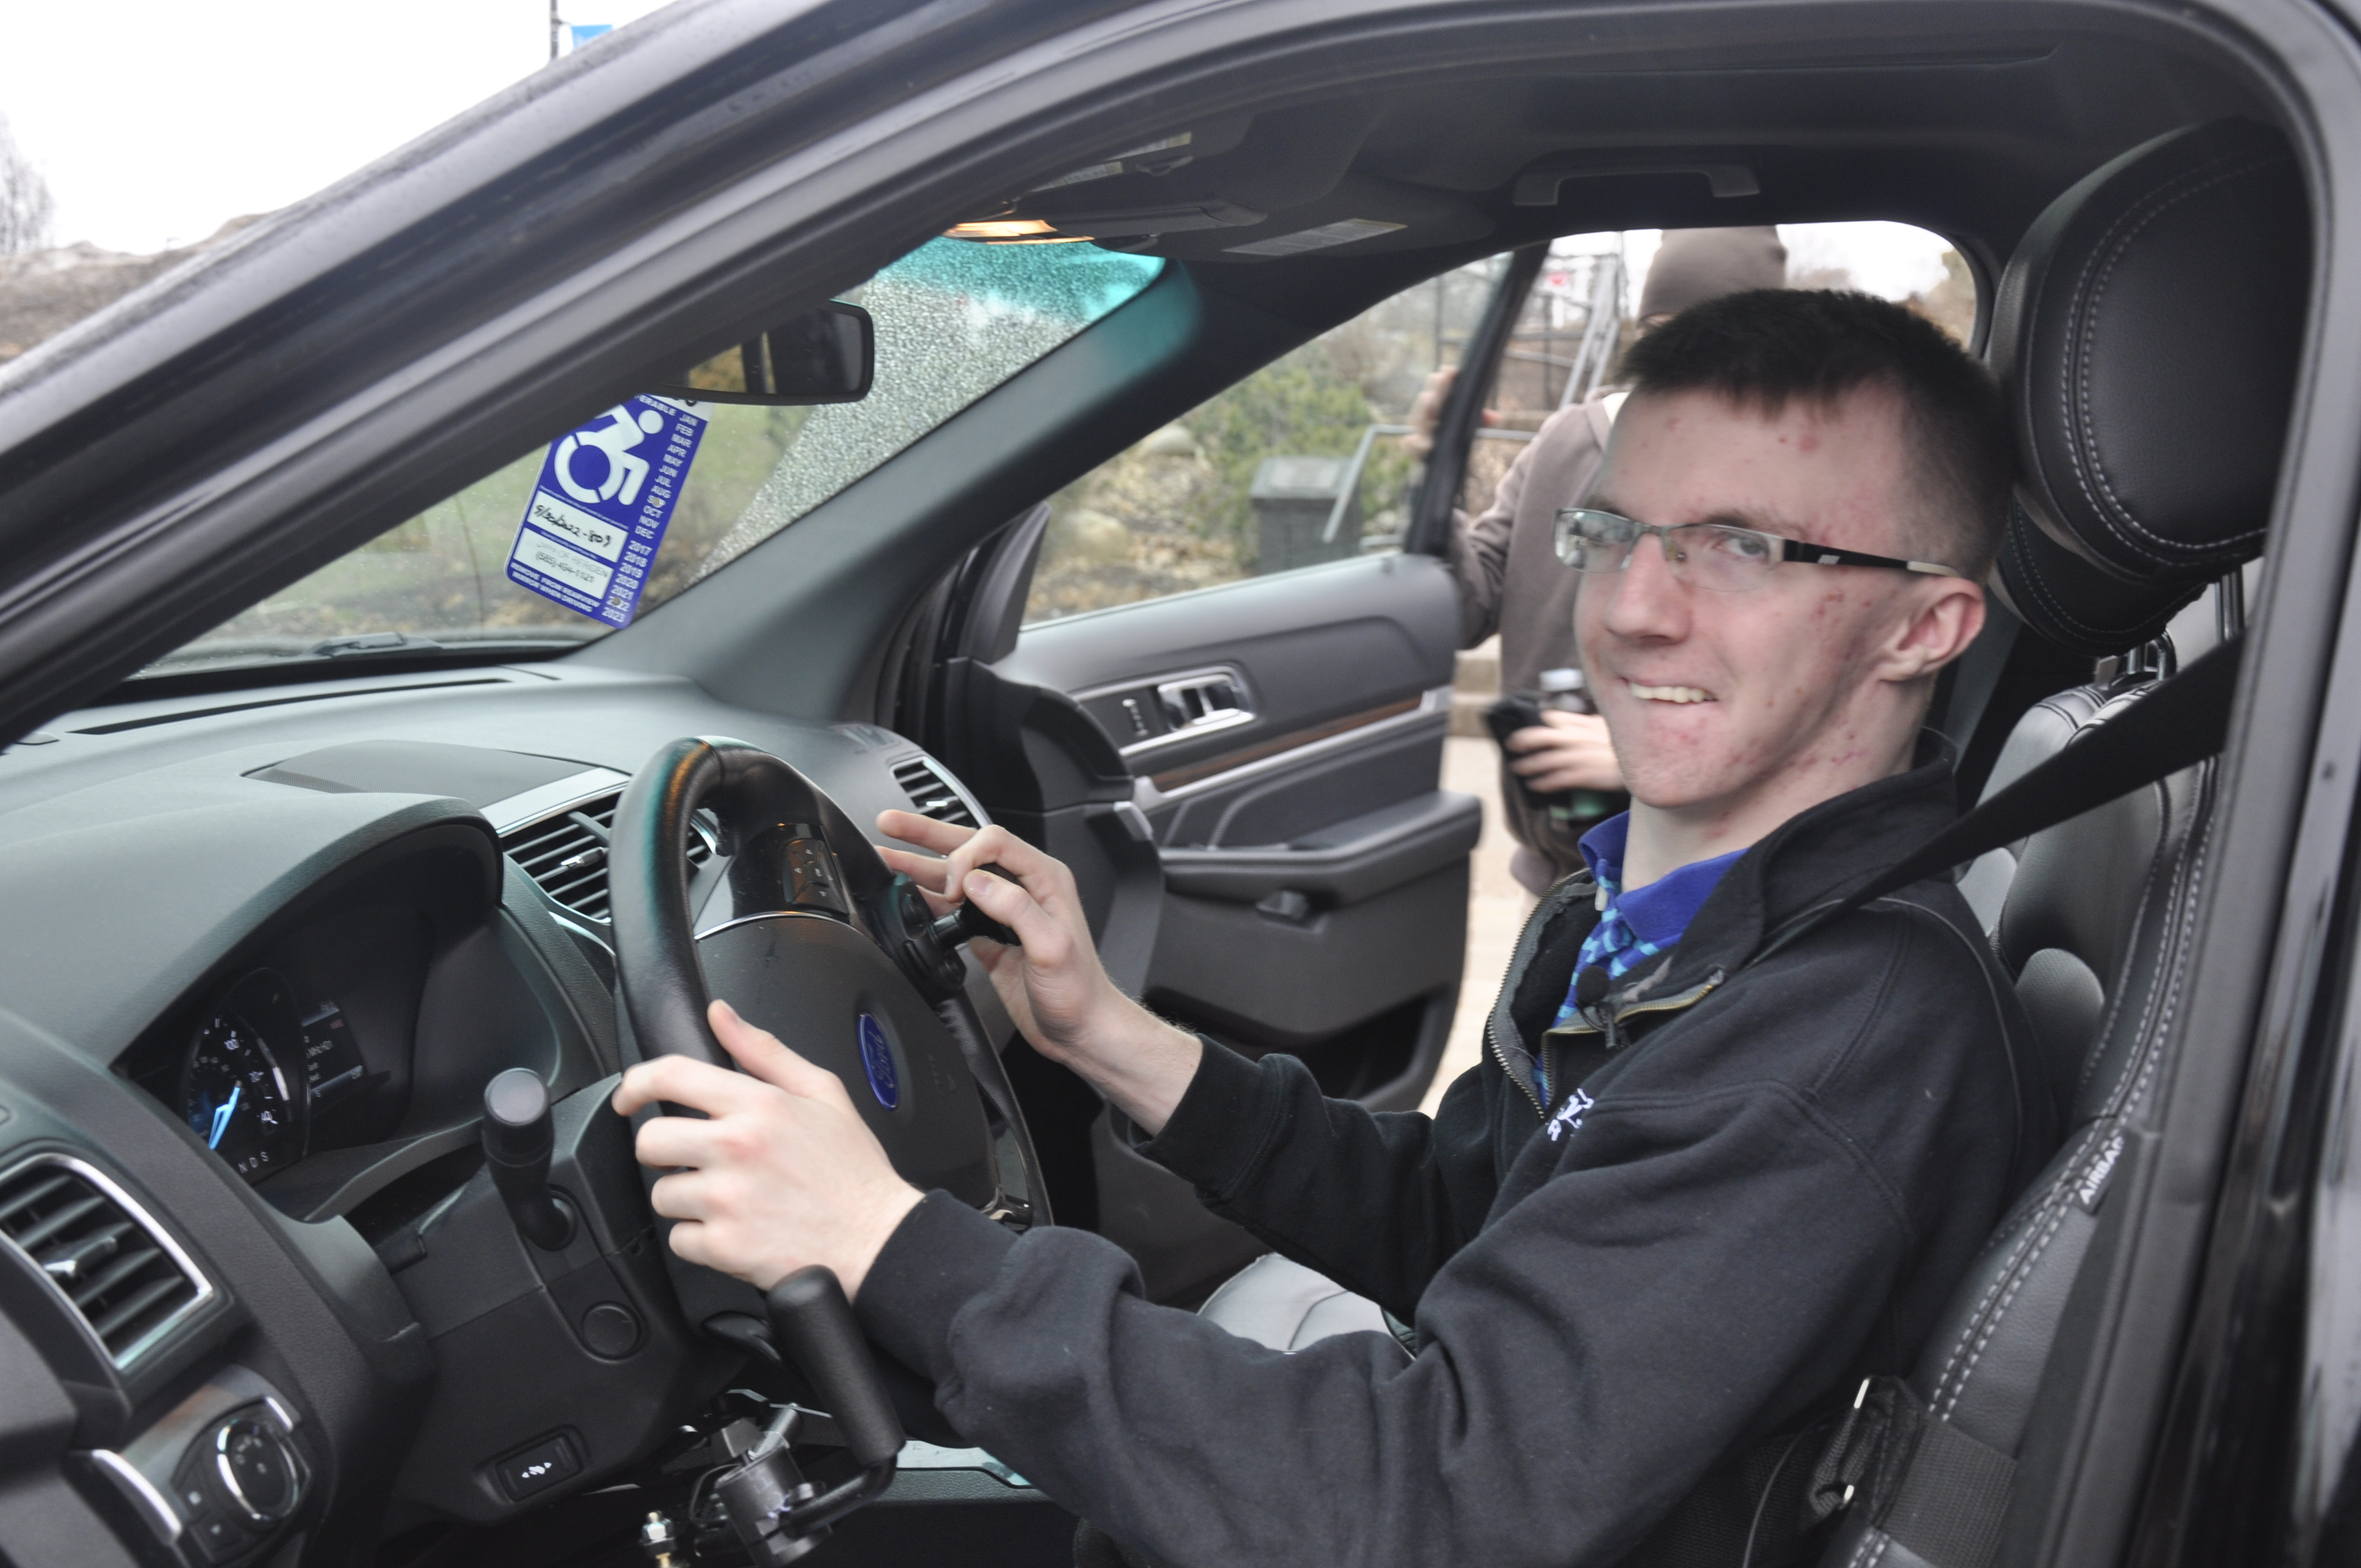 Russell Cunningham behind the wheel of his SUV.